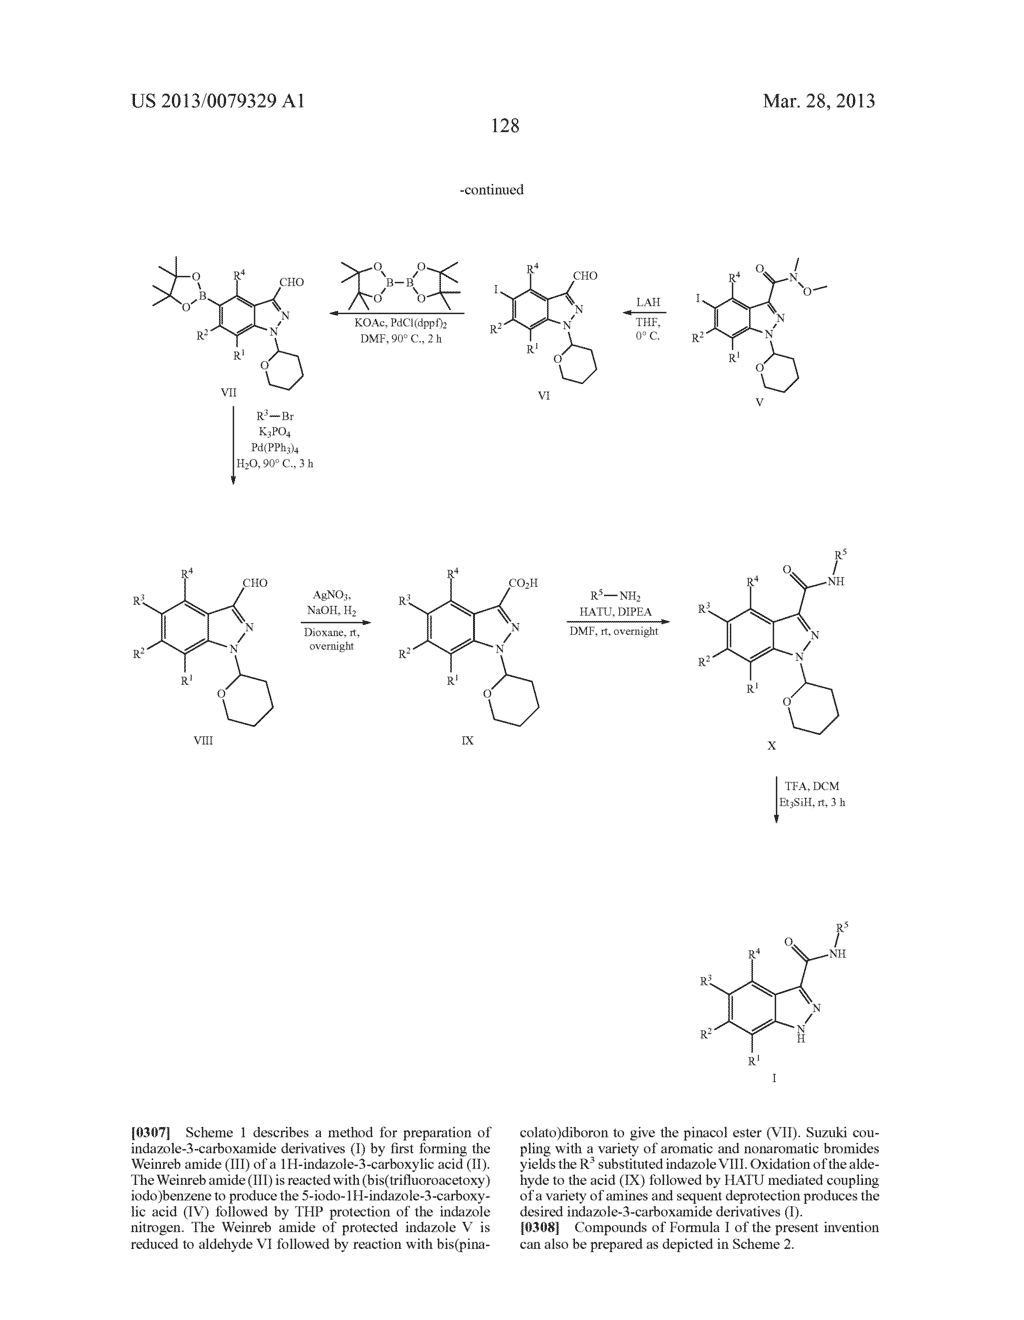 INDAZOLE-3-CARBOXAMIDES AND THEIR USE AS WNT/Beta-CATENIN SIGNALING     PATHWAY INHIBITORS - diagram, schematic, and image 129